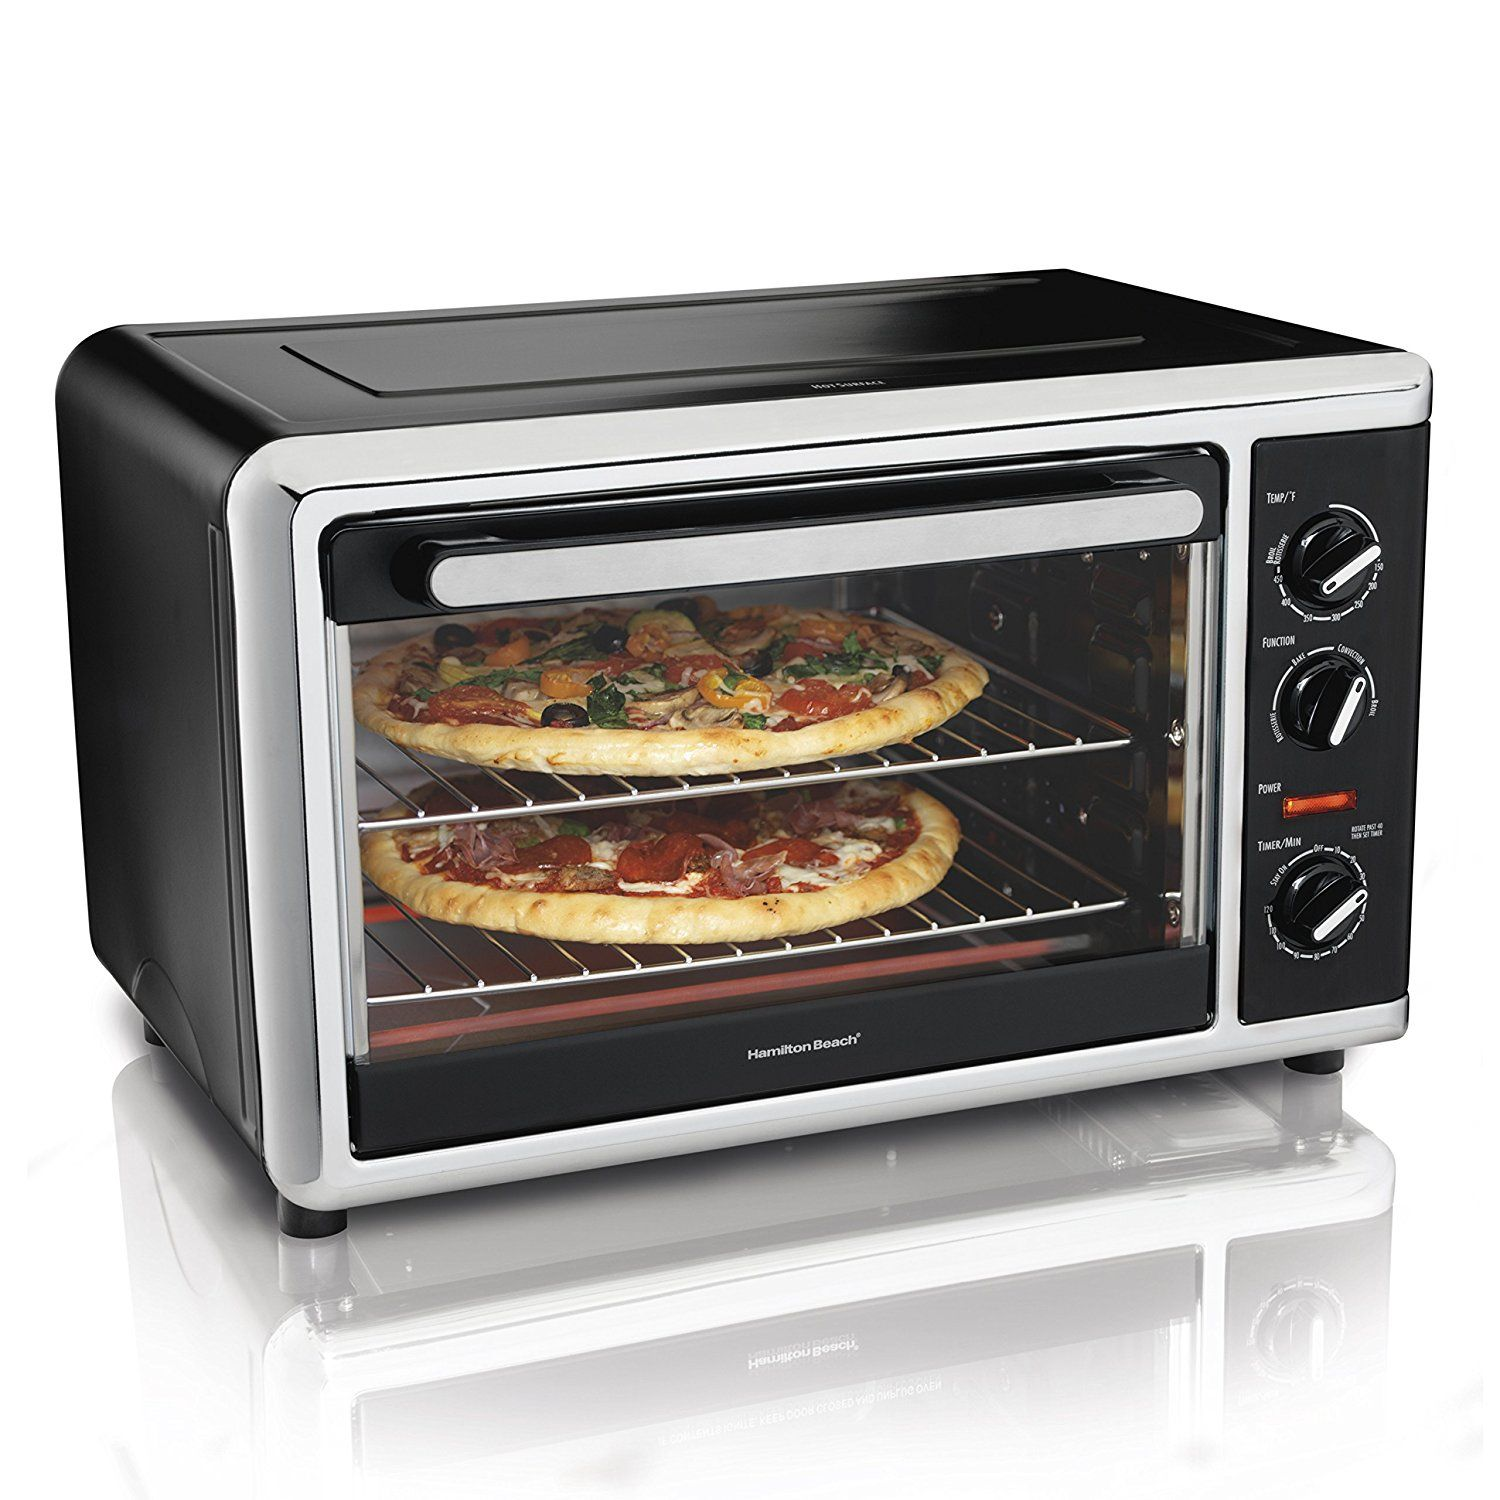 Hamilton Beach 31105hb Countertop Oven With Silver Black Click Image For More Details With Images Countertop Convection Oven Countertop Oven Countertop Toaster Oven